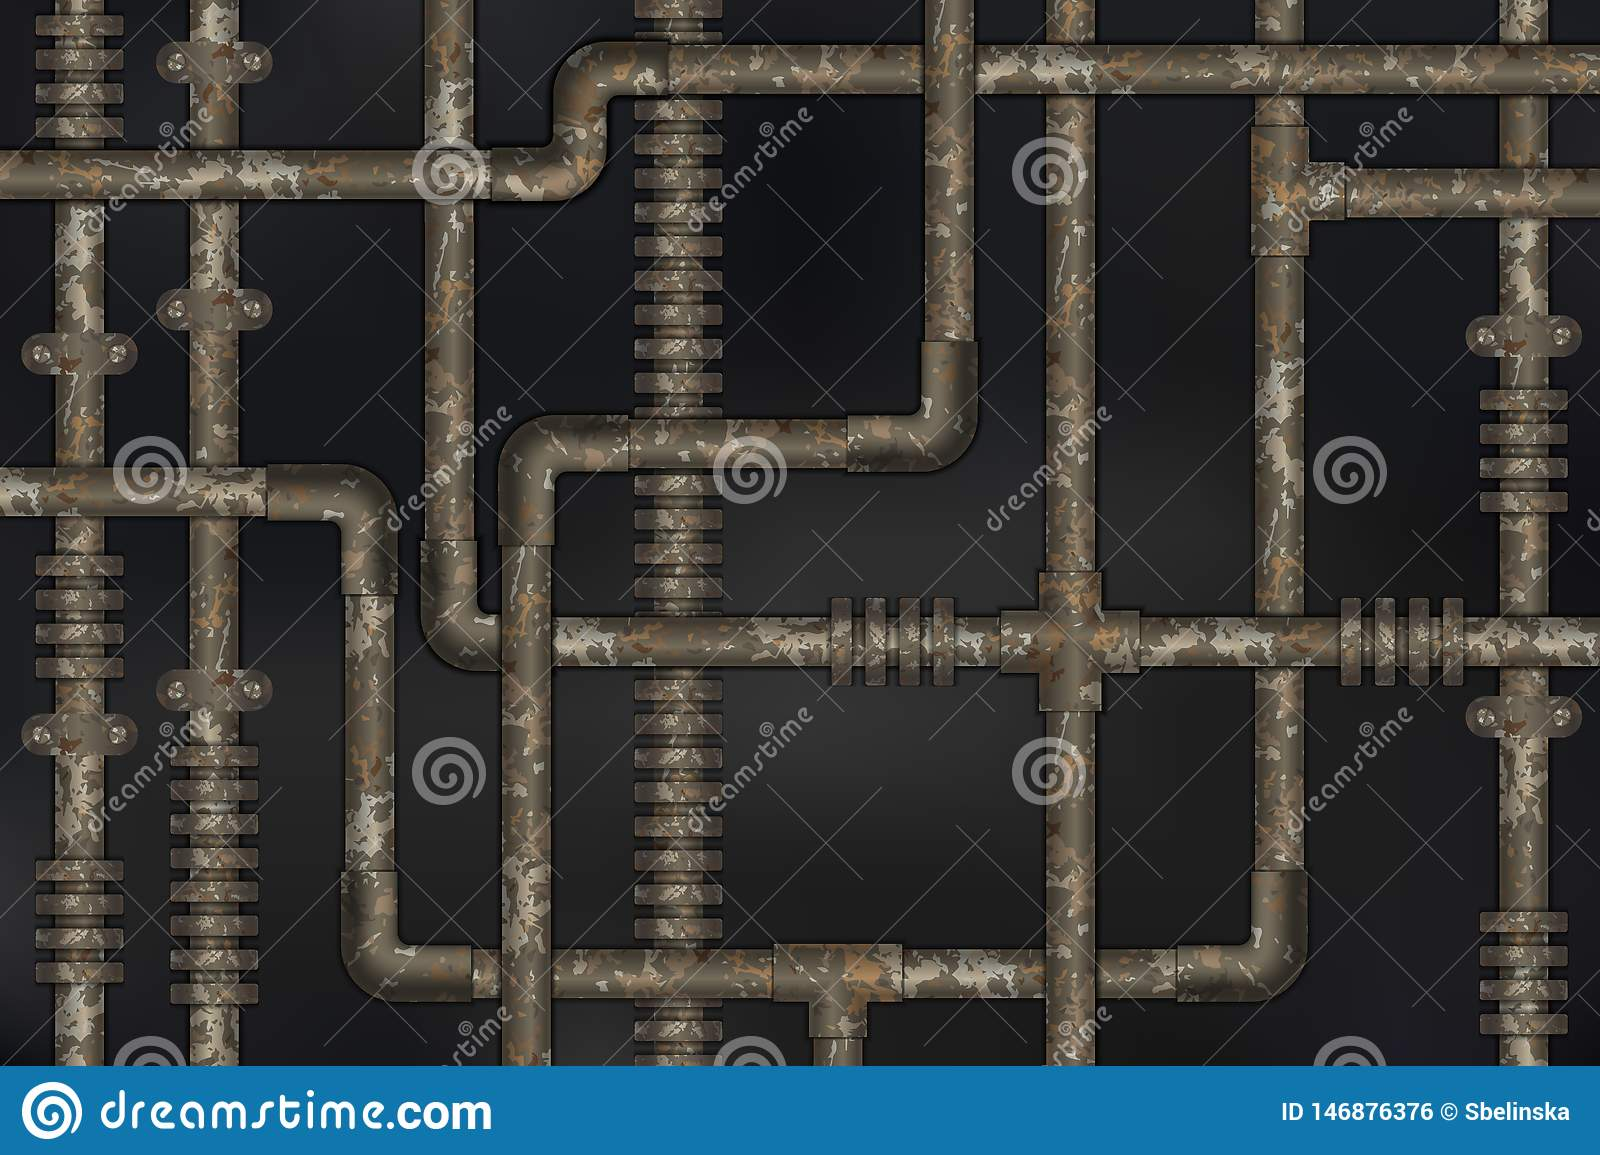 Dark and rusty pipes on the wall abstract industrial steampunk background